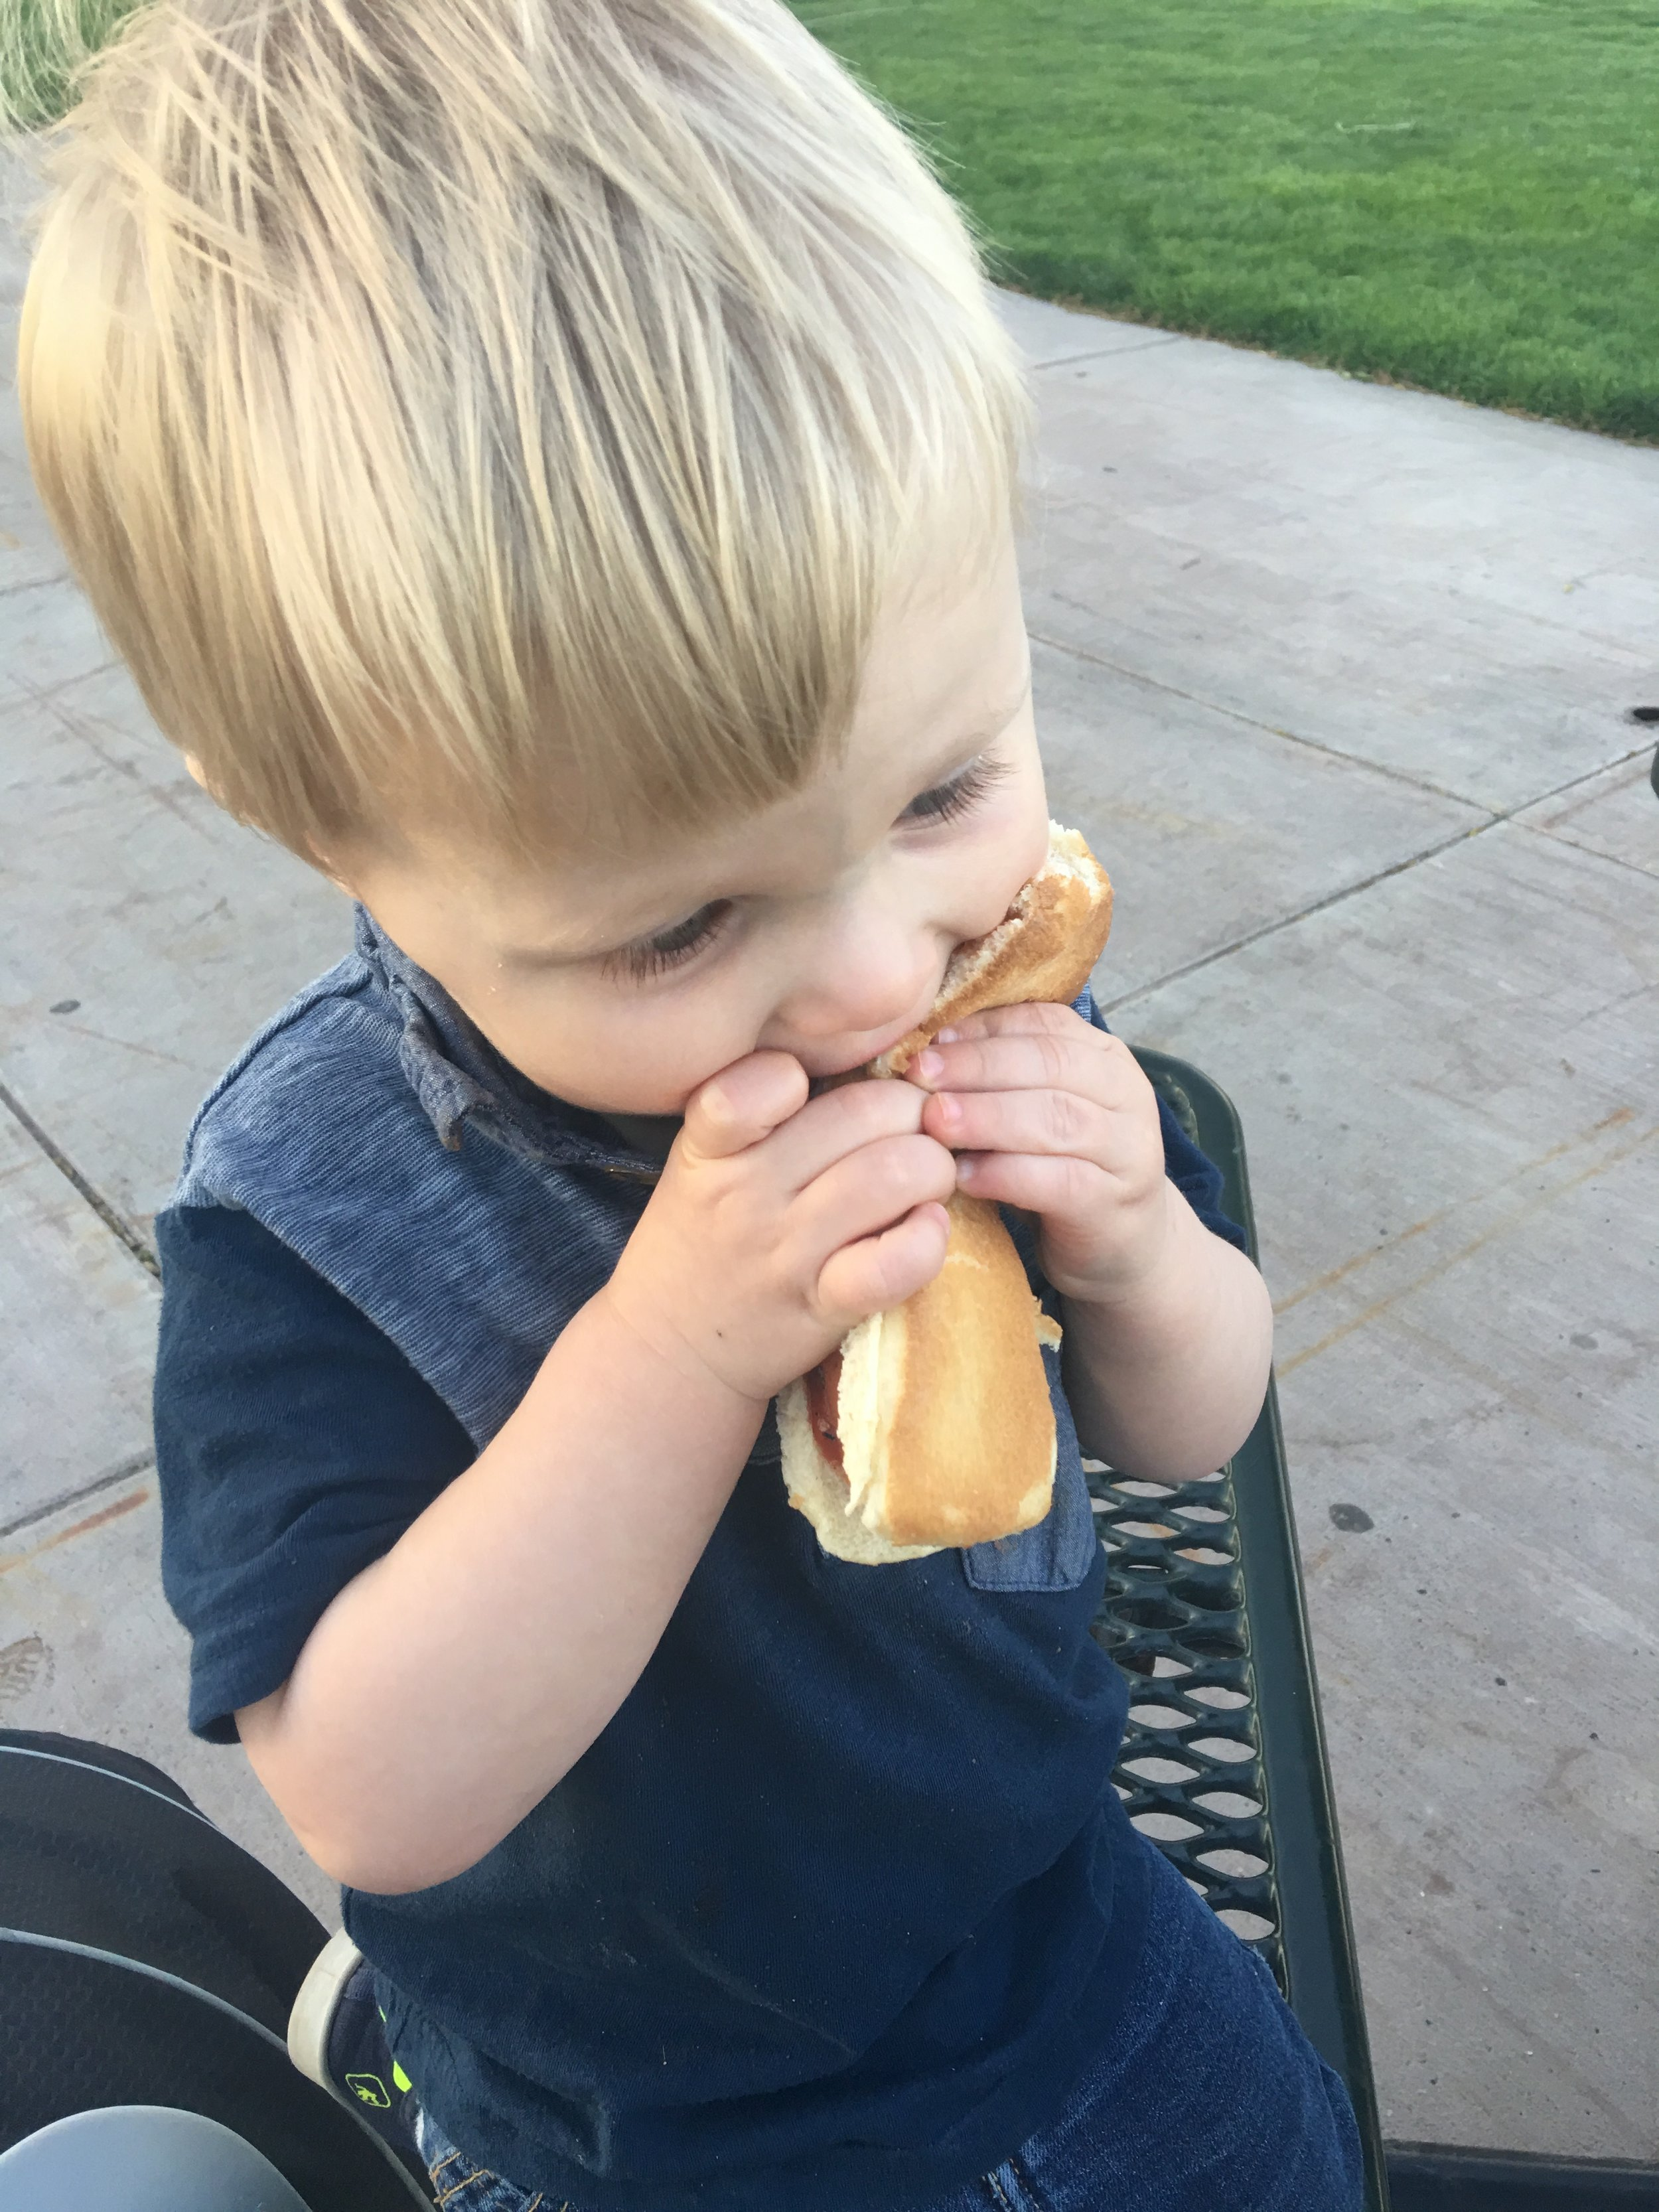 Hotdogs and burgers for dinner in the park!